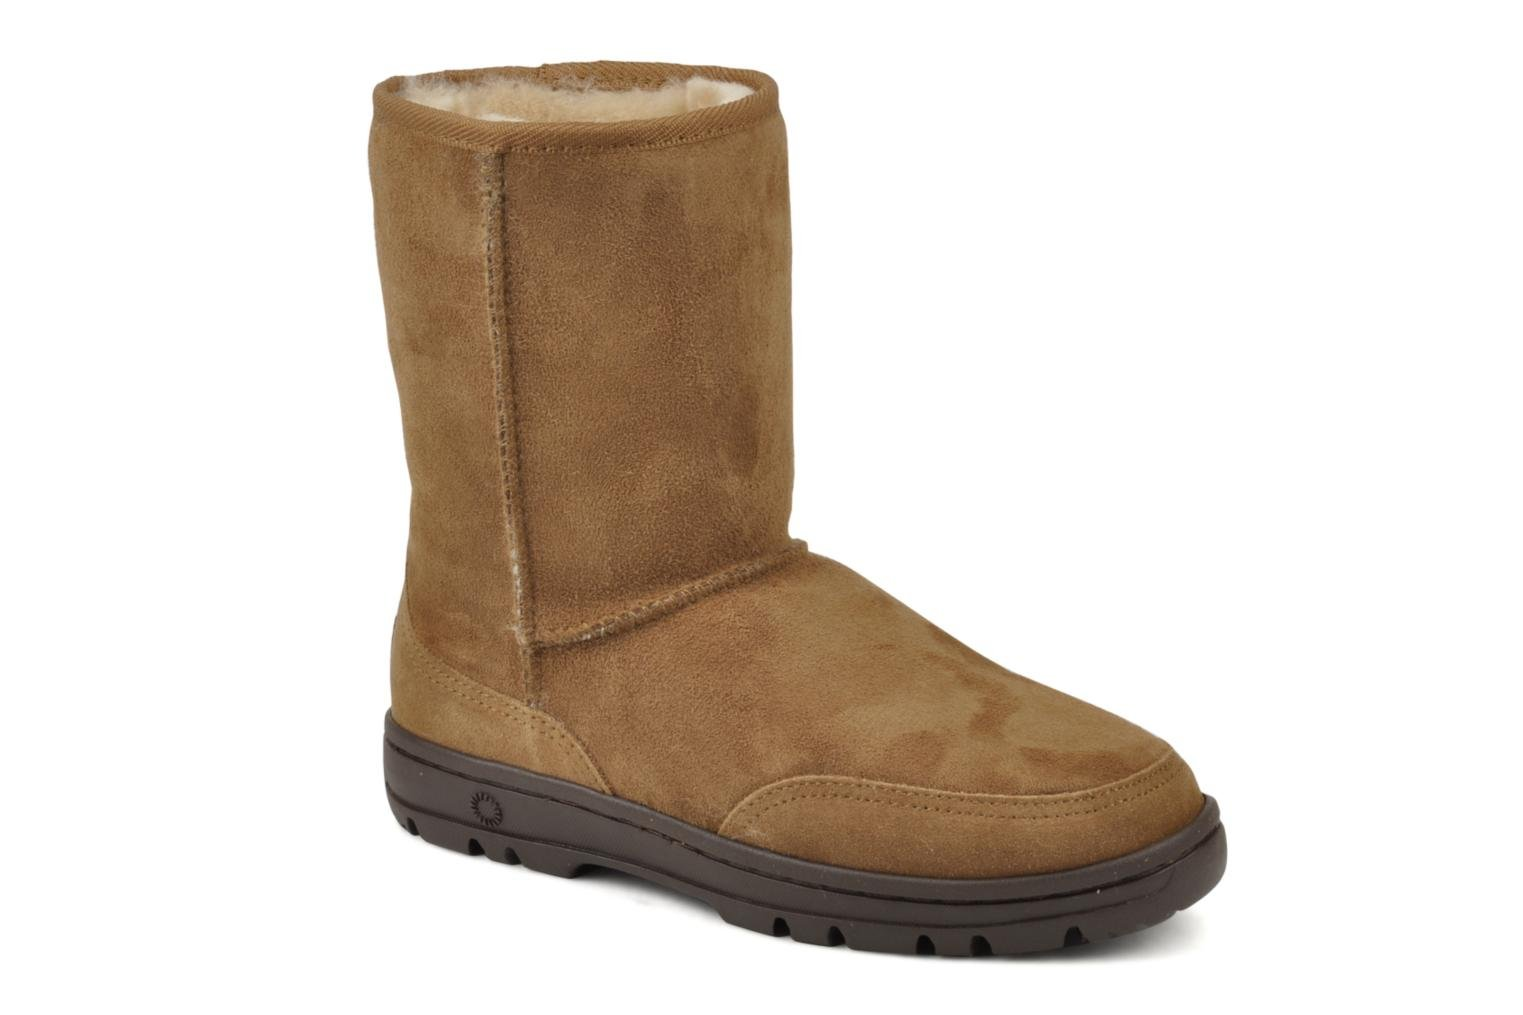 Bottines et boots UGG Ultra Short W Marron vue détail/paire